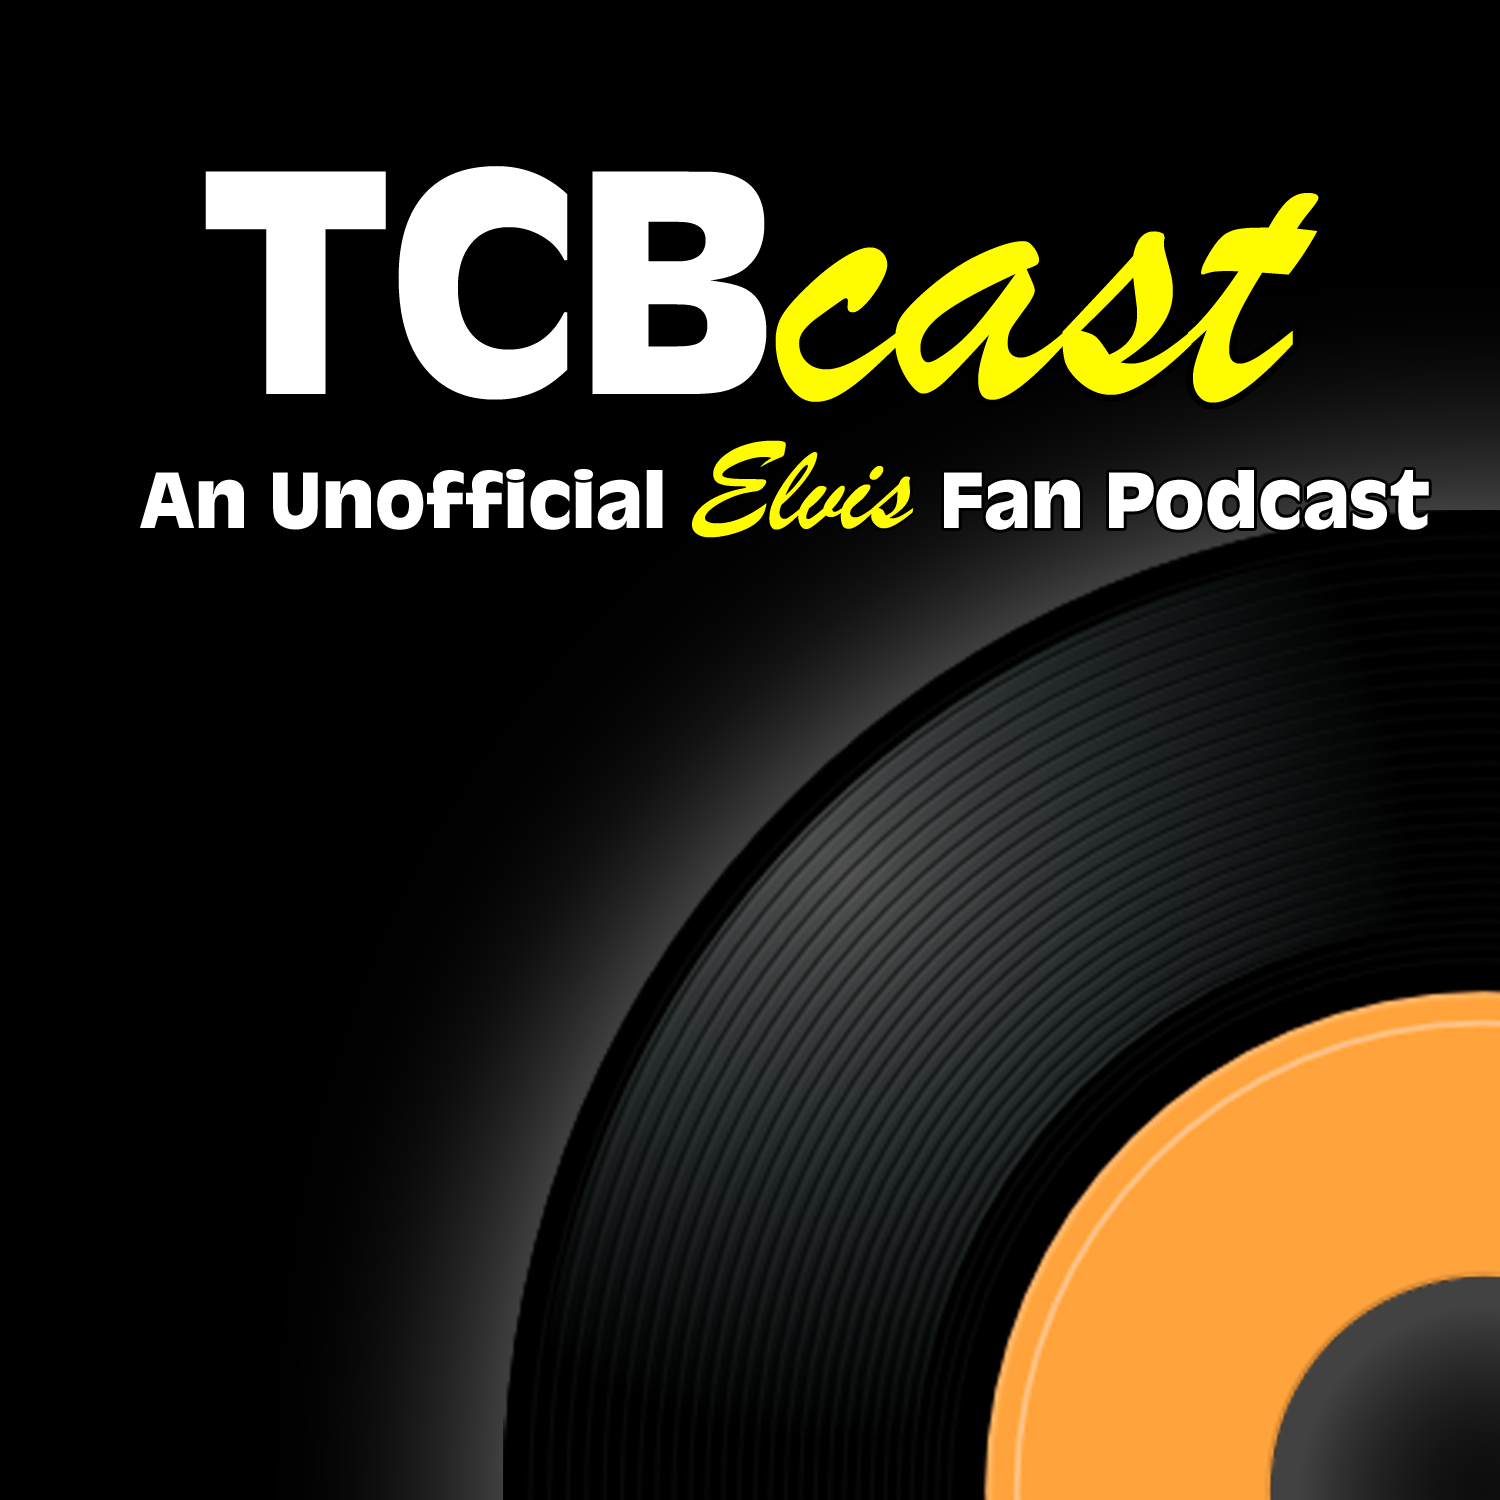 TCBCast: An Unofficial Elvis Presley Fan Podcast show image